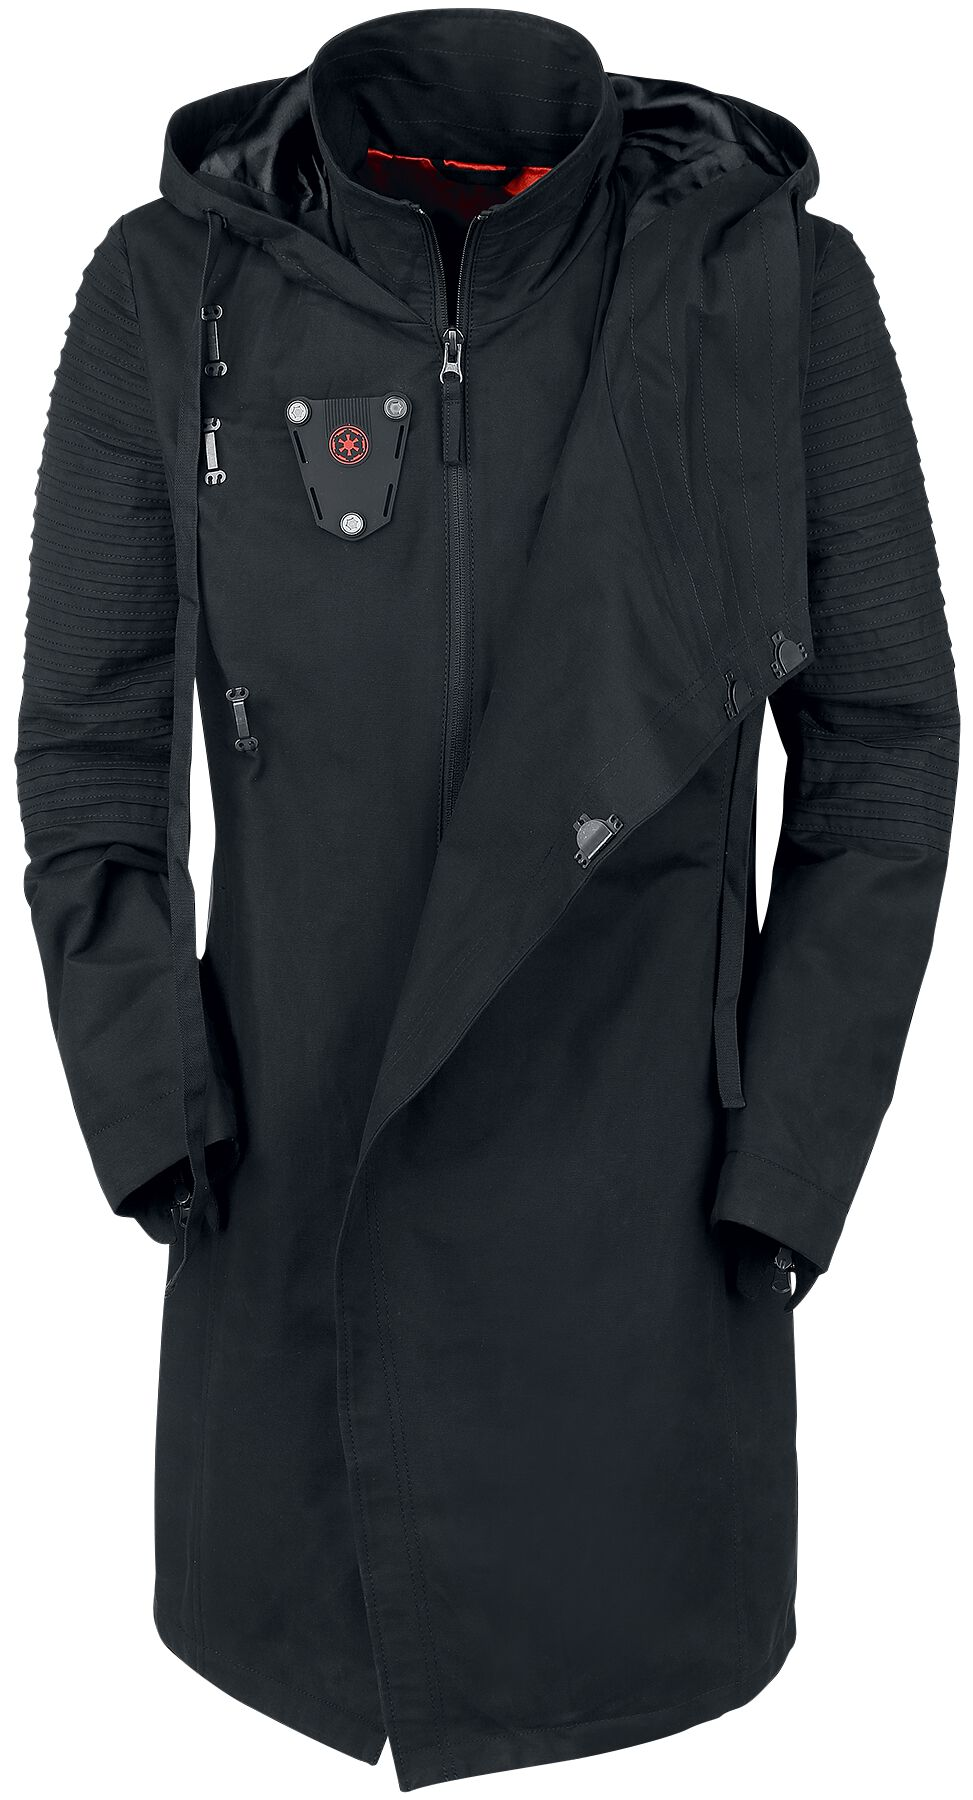 Sith Lord Short Coat Buy online now